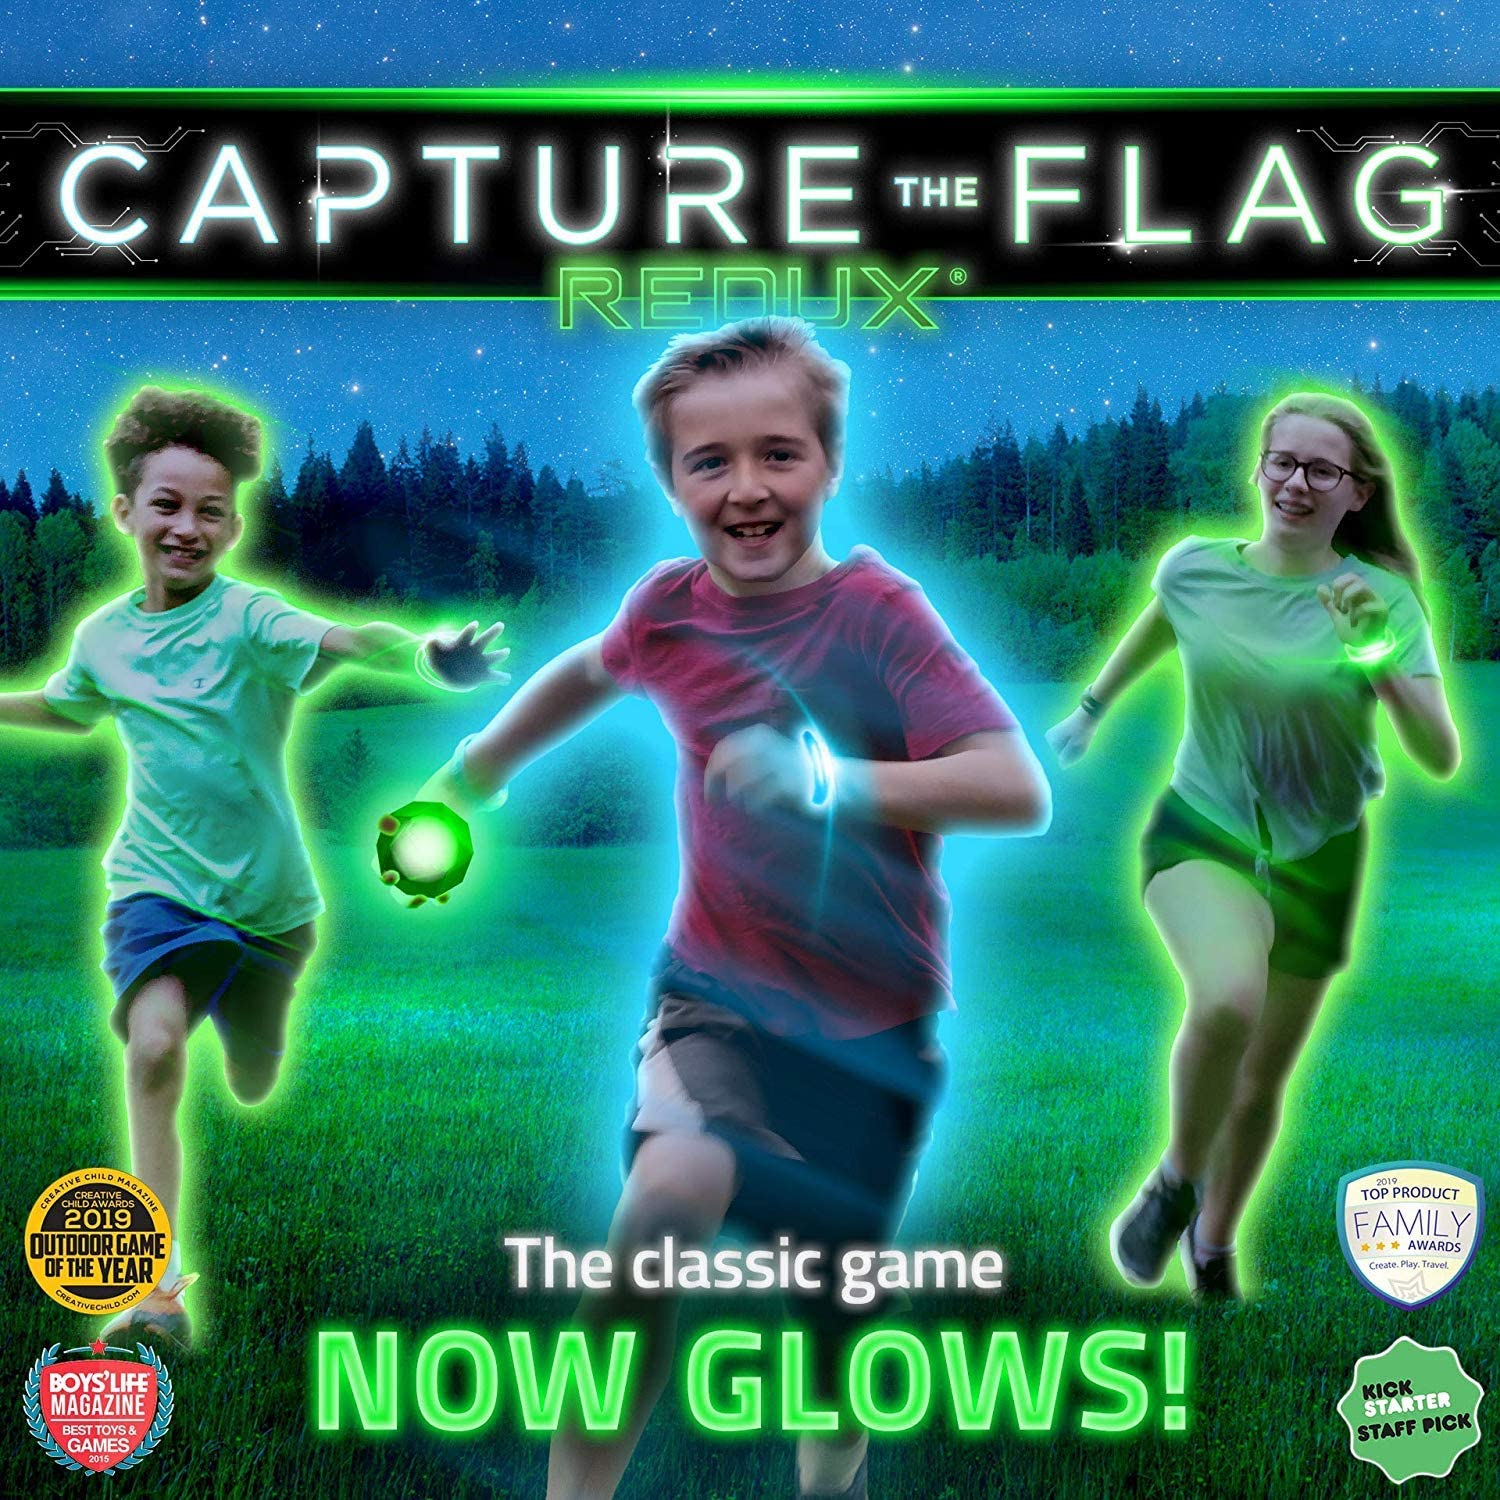 Kids Glow-in-the-dark Game for Camping